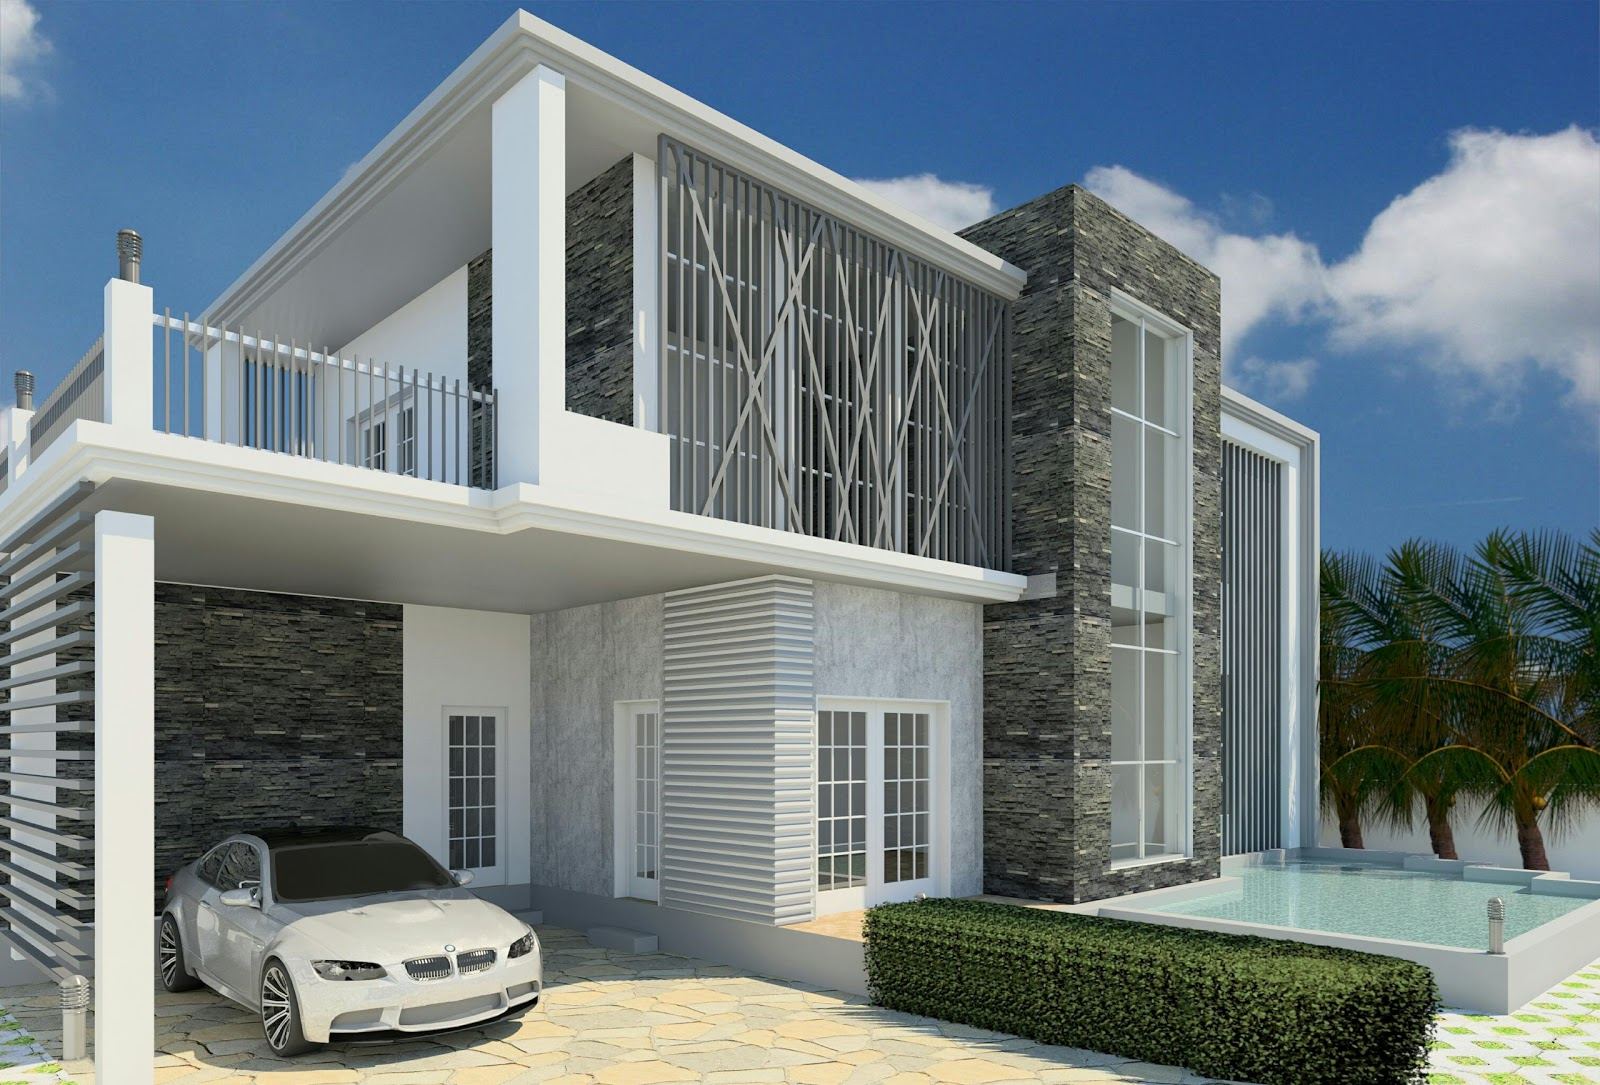 Revit architecture modern house design 8 cad needs for Online architecture design